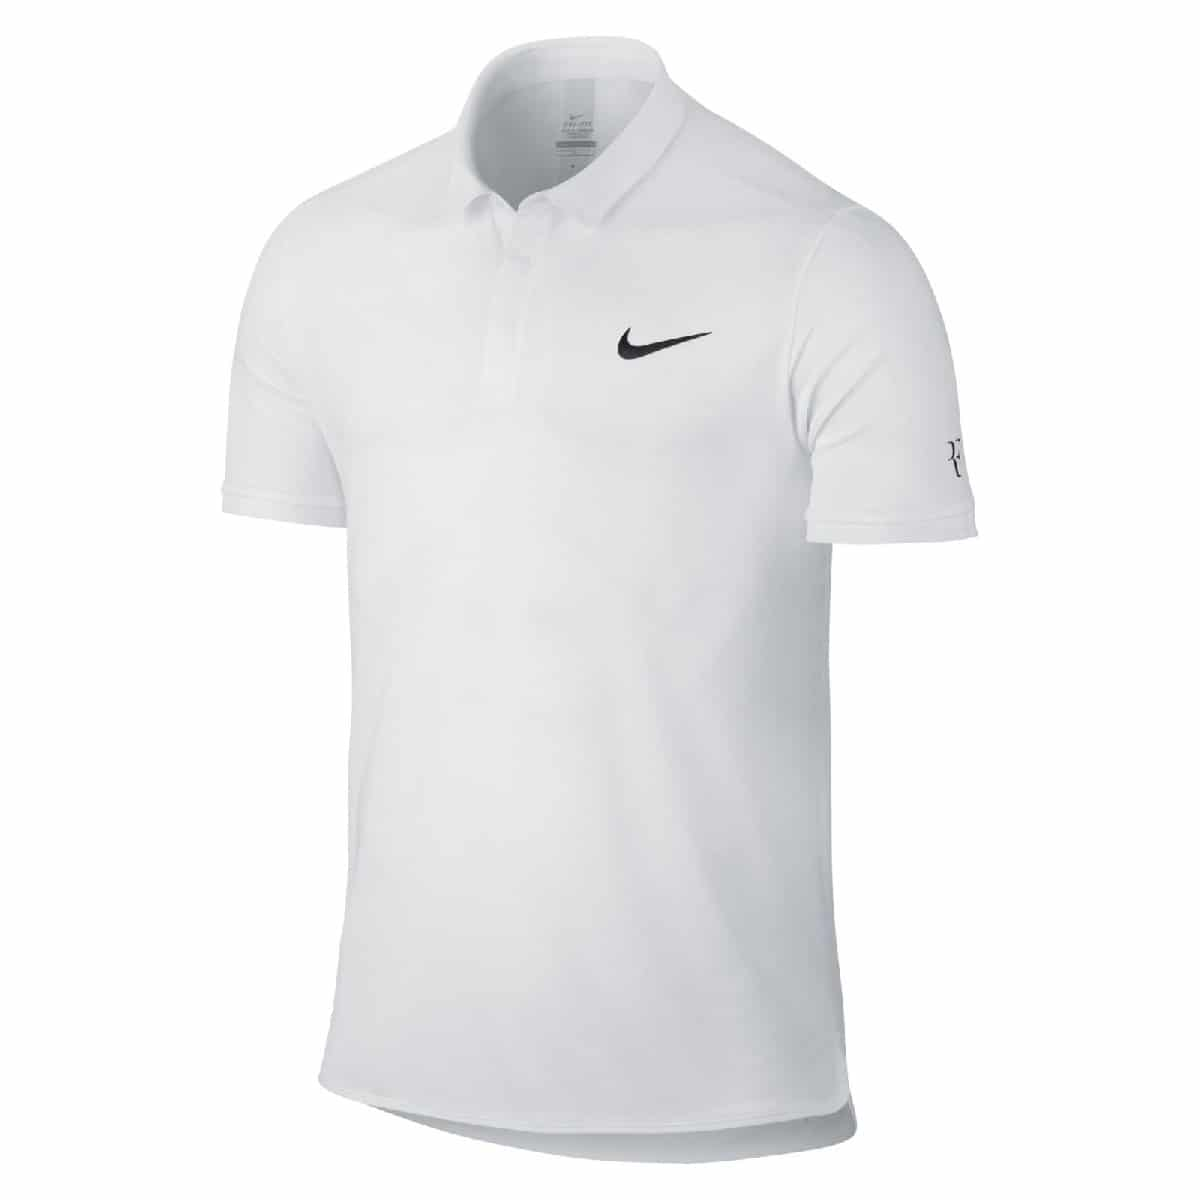 447b5fe2 Roger Federer's Outfit For Wimbledon 2016 - peRFect Tennis